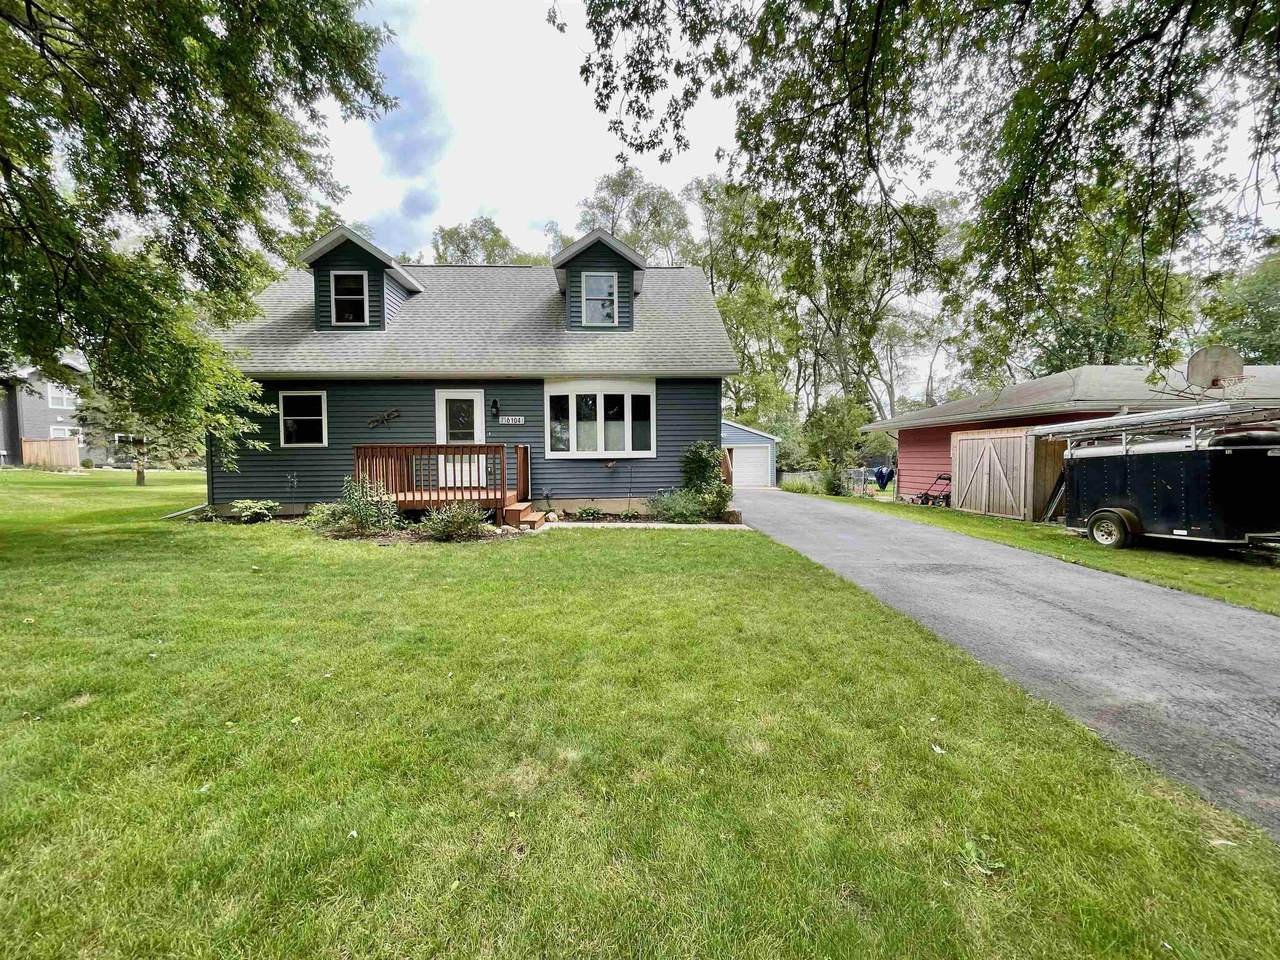 6104 Roselawn Ave - Photo 1